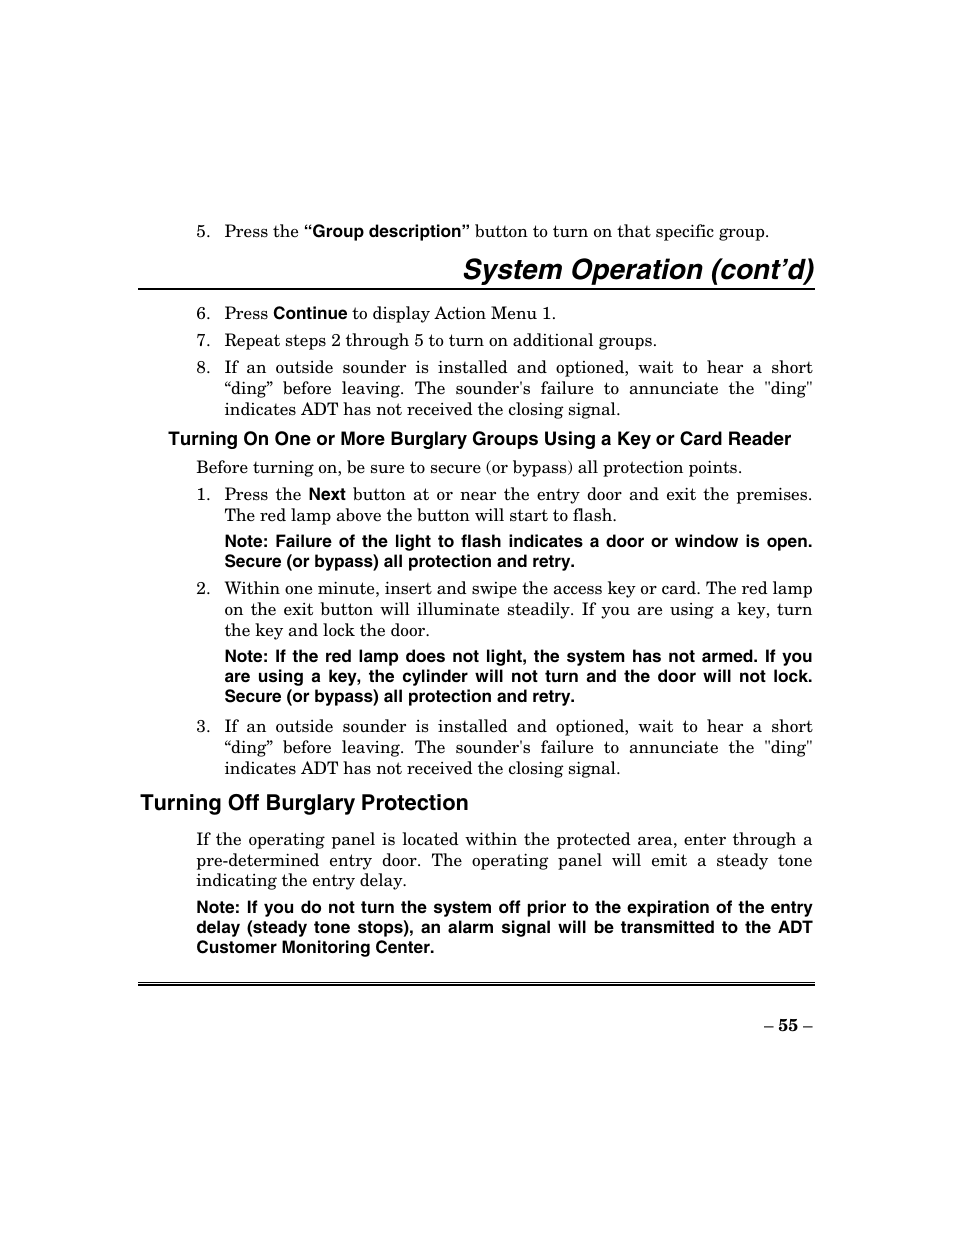 System operation (cont'd) | ADT Security Services Focus 200 Plus User Manual  | Page 55 / 88